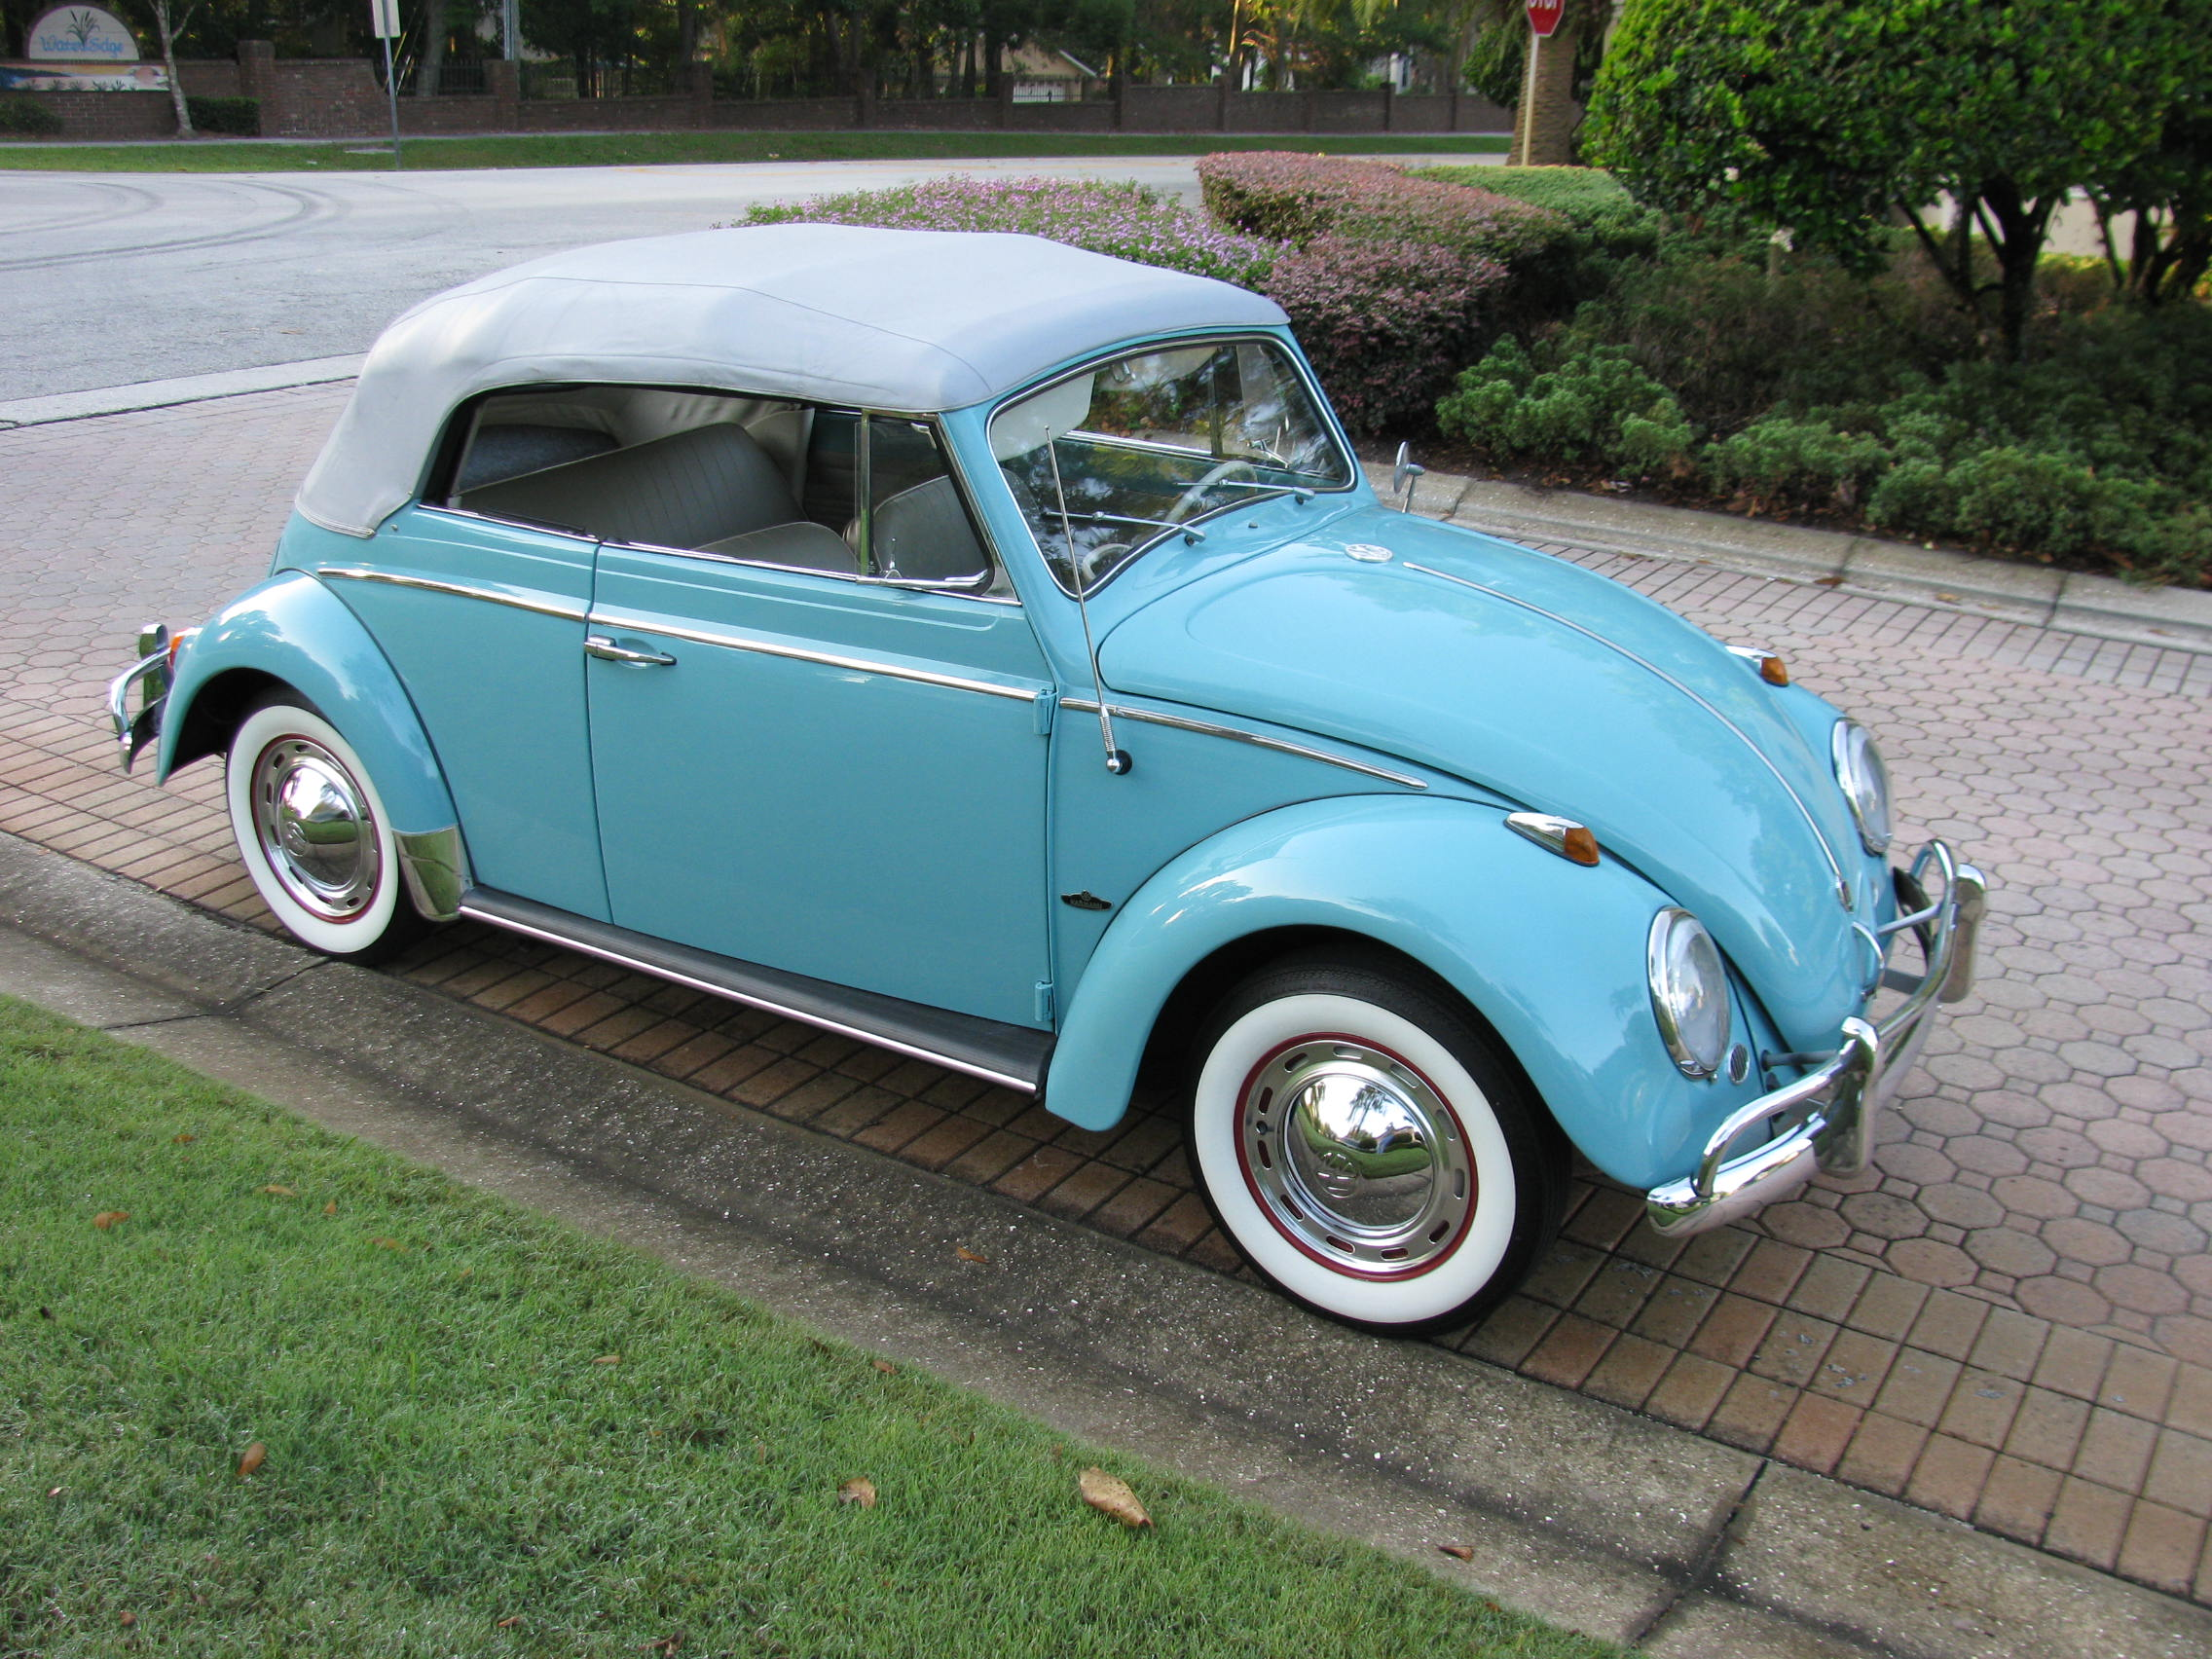 1963 Volkswagen Beetle Convertible - SOLD! - Vantage Sports Cars | Vantage Sports Cars